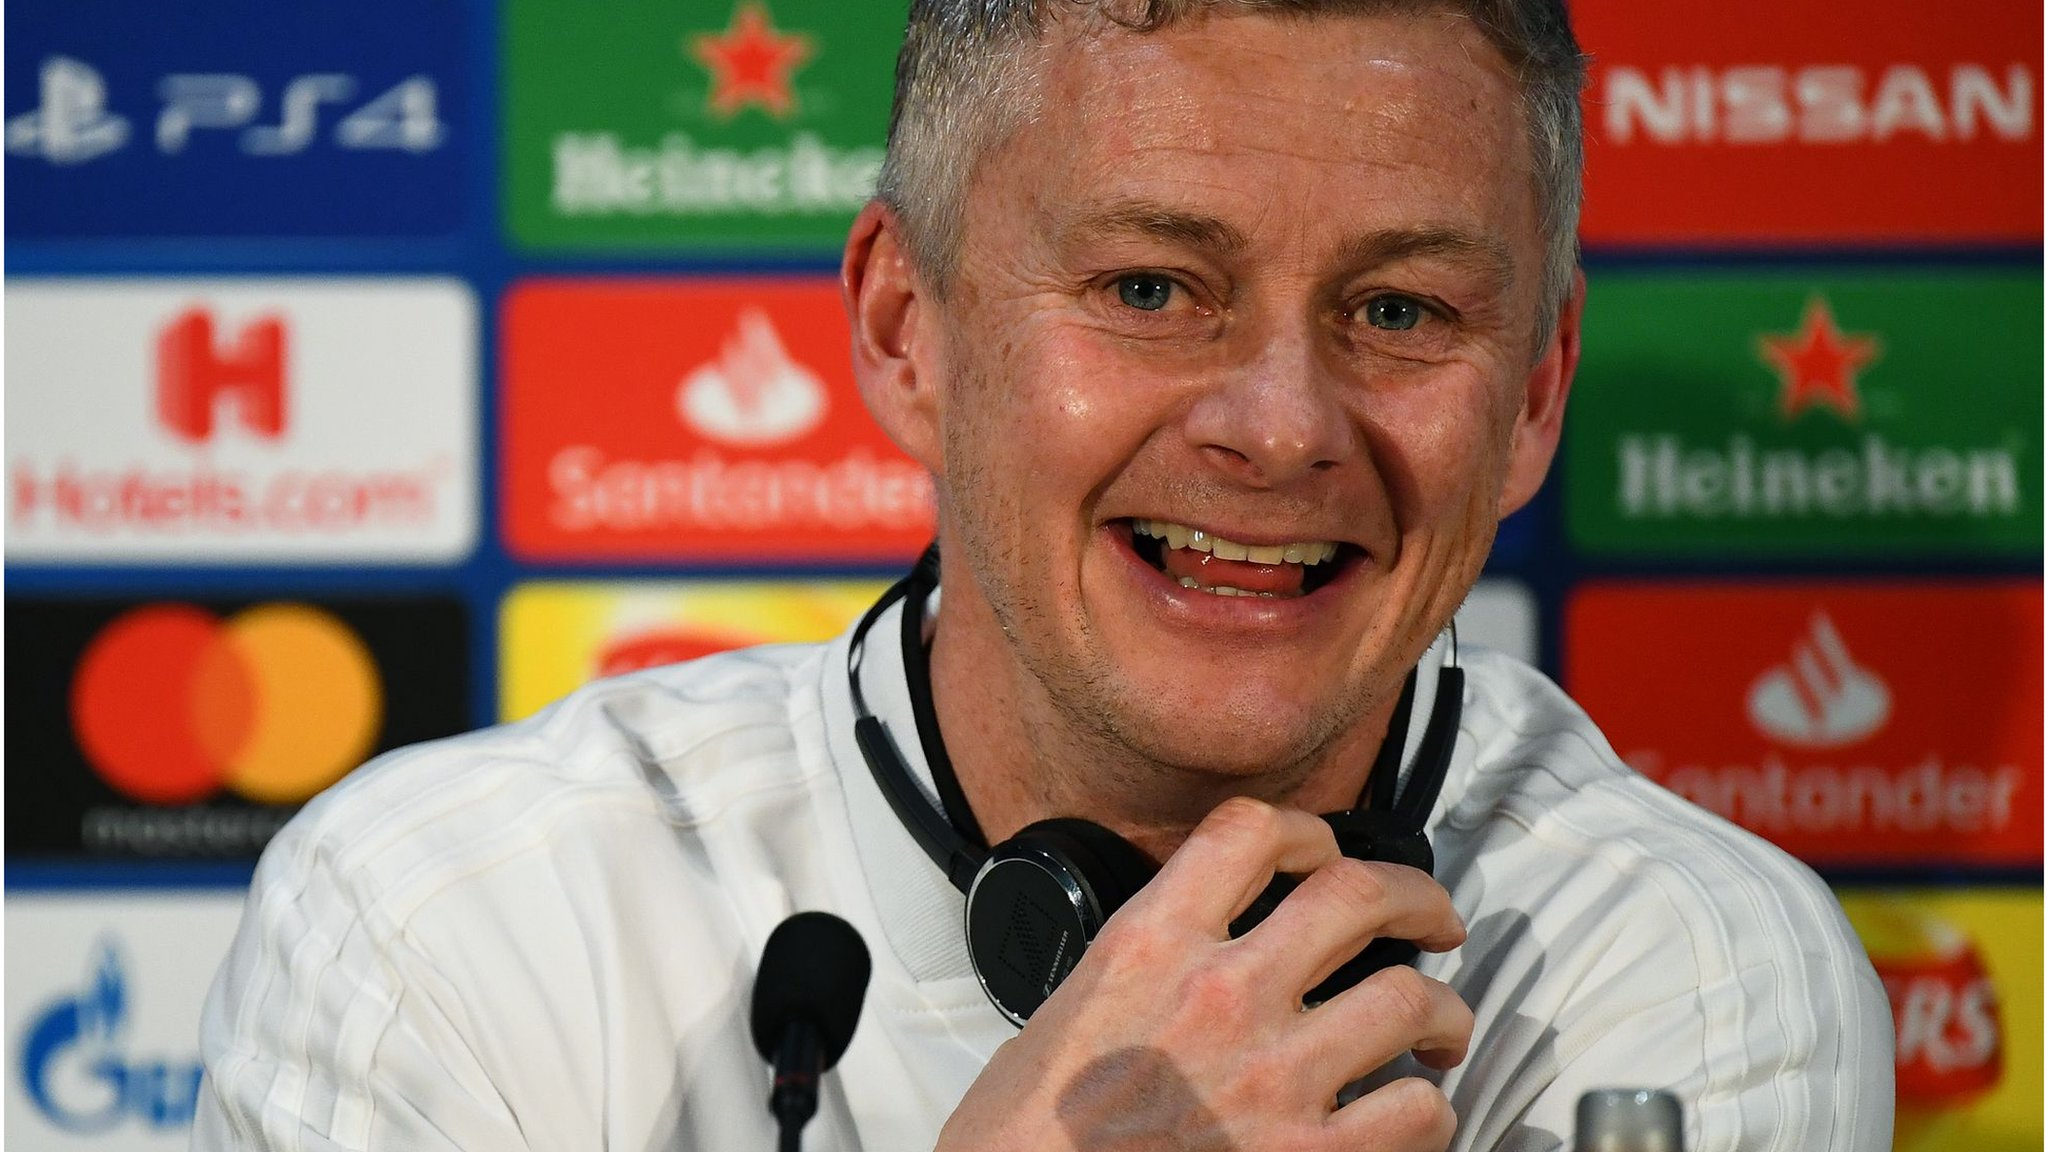 Man Utd: 'Too simple' to say two wins will secure job, says Ole Gunnar Solskjaer